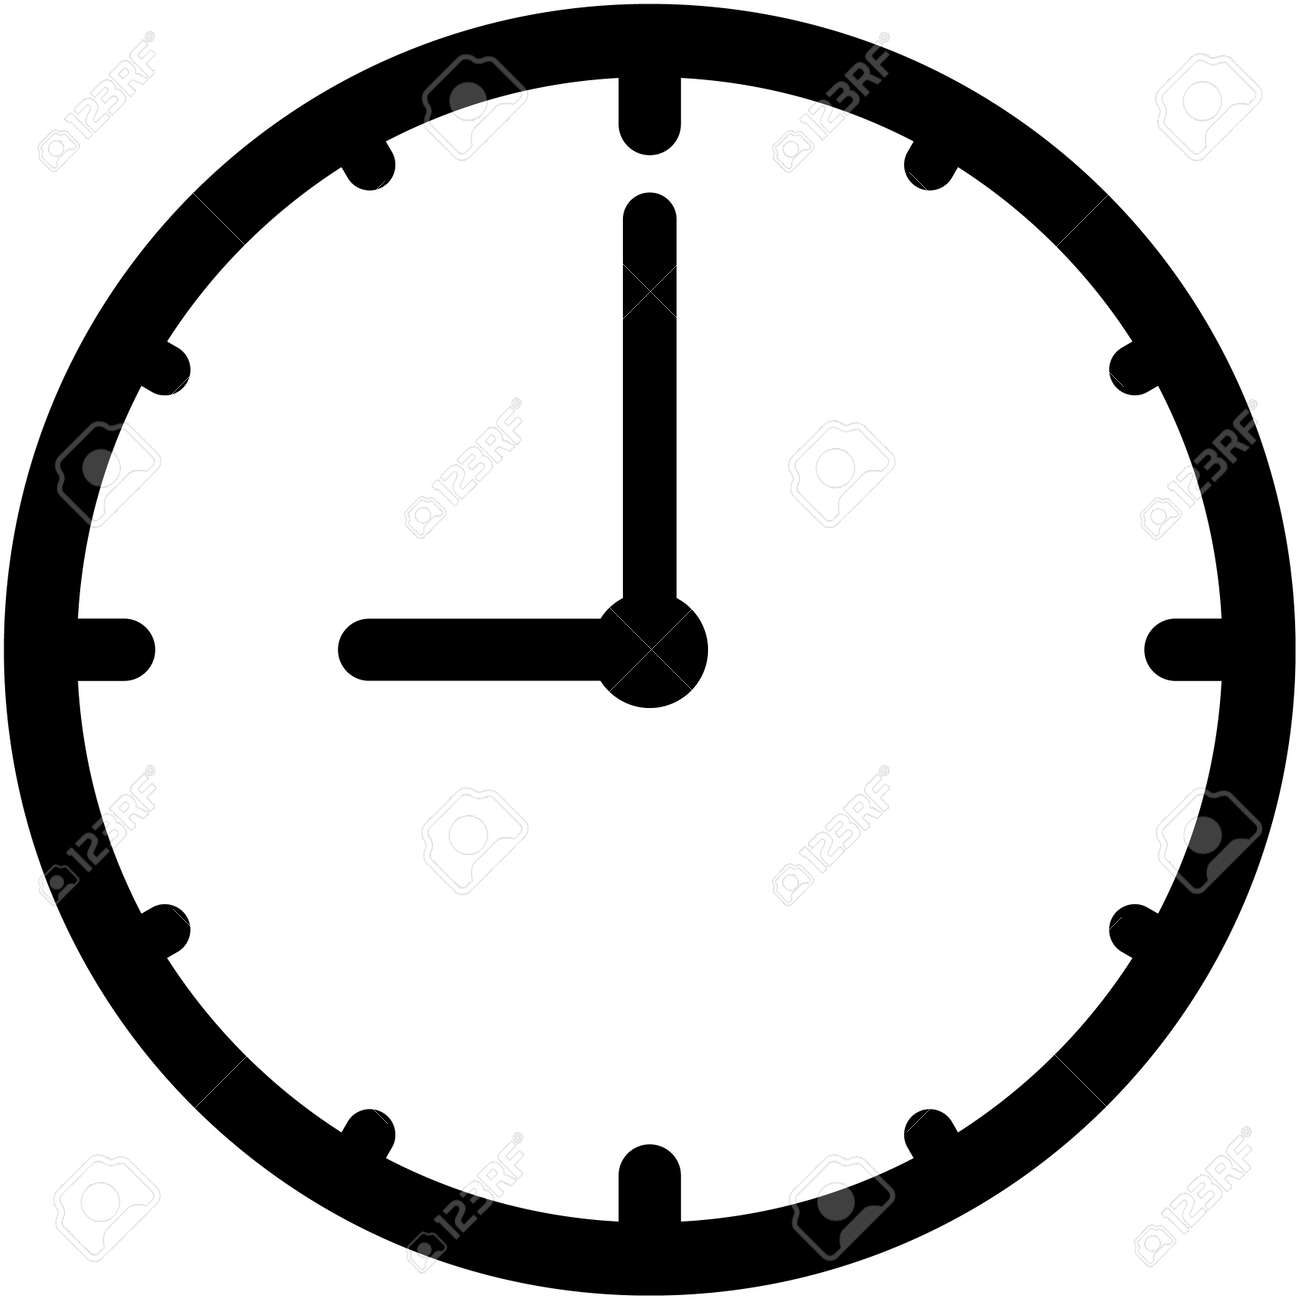 vector clock icon isolated royalty free cliparts vectors and stock rh 123rf com clock icon vector png clock icon vector png